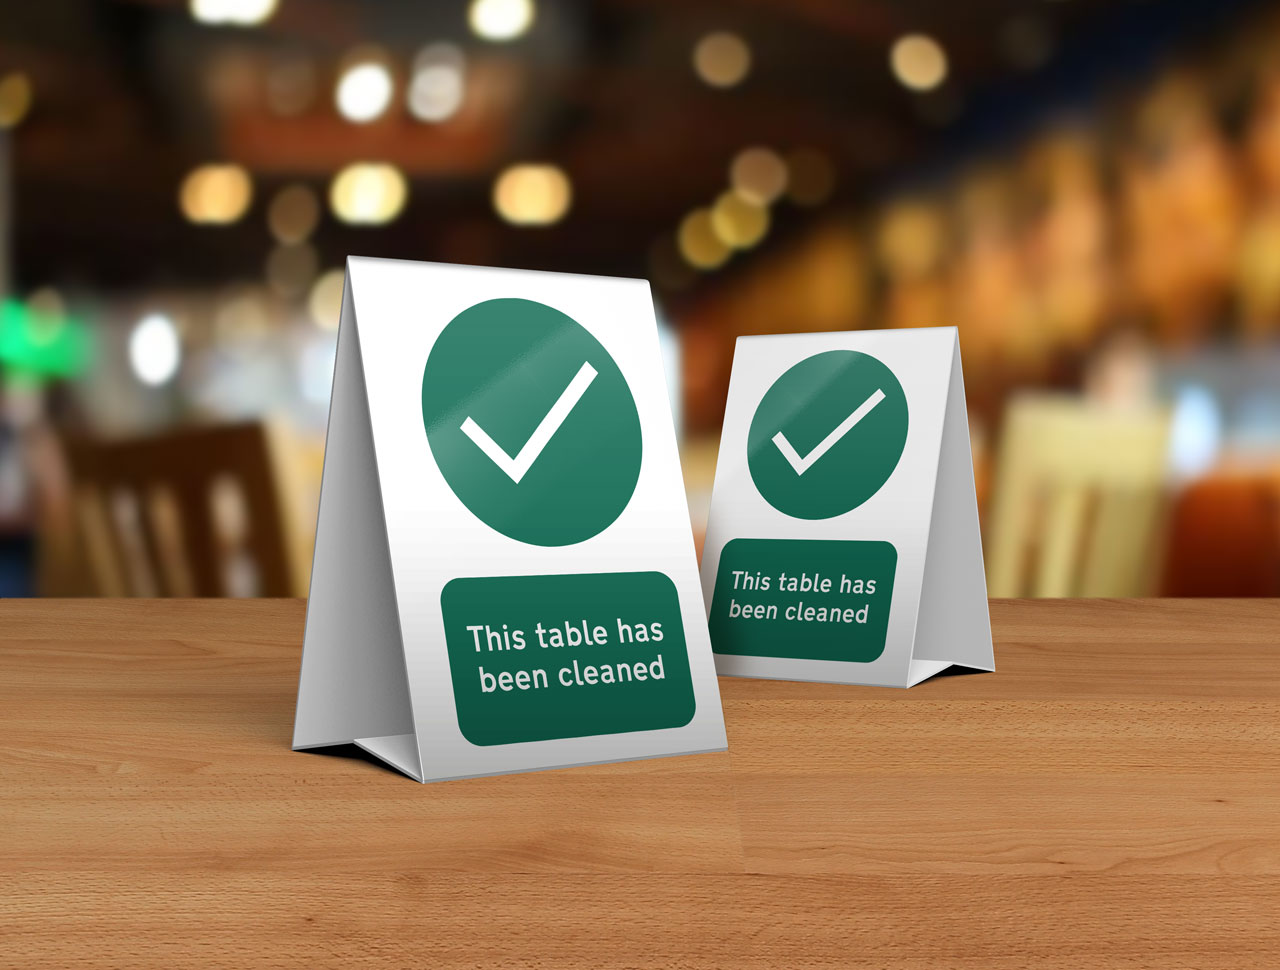 This Table is Ready for Use Tent Card for Restaurants, Cafes and Pubs